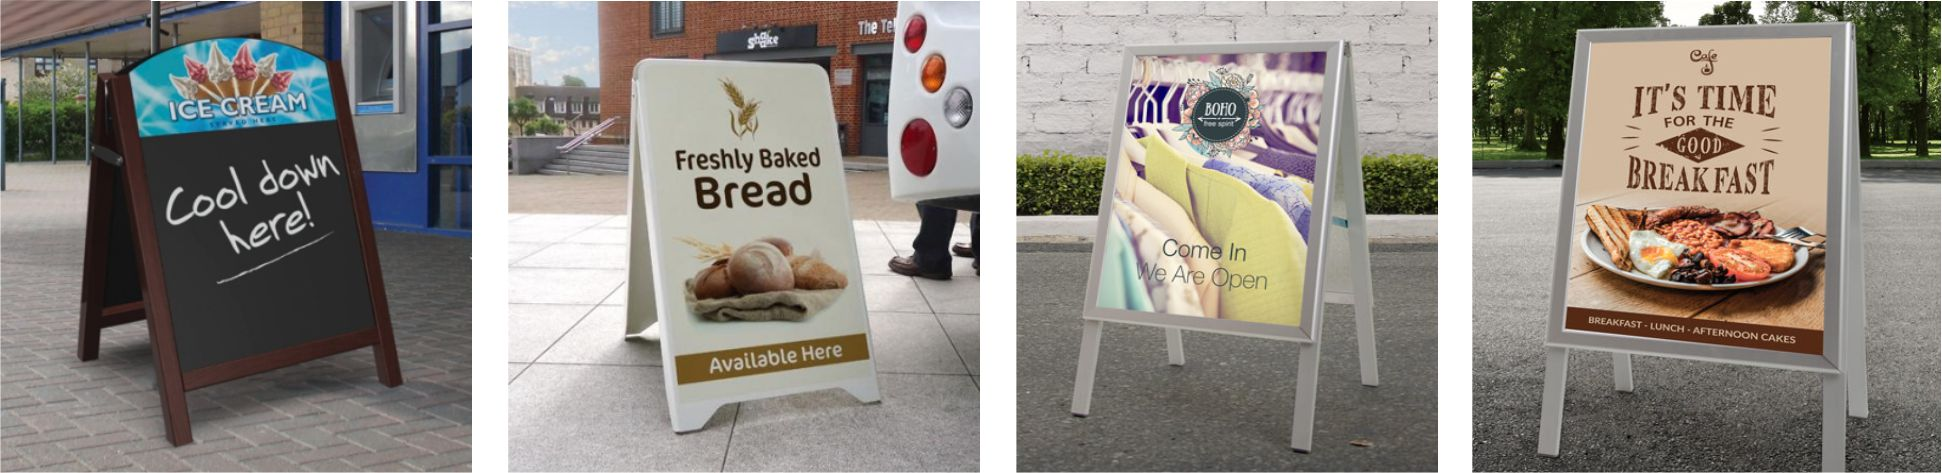 4 examples of A-Board Signs in situ